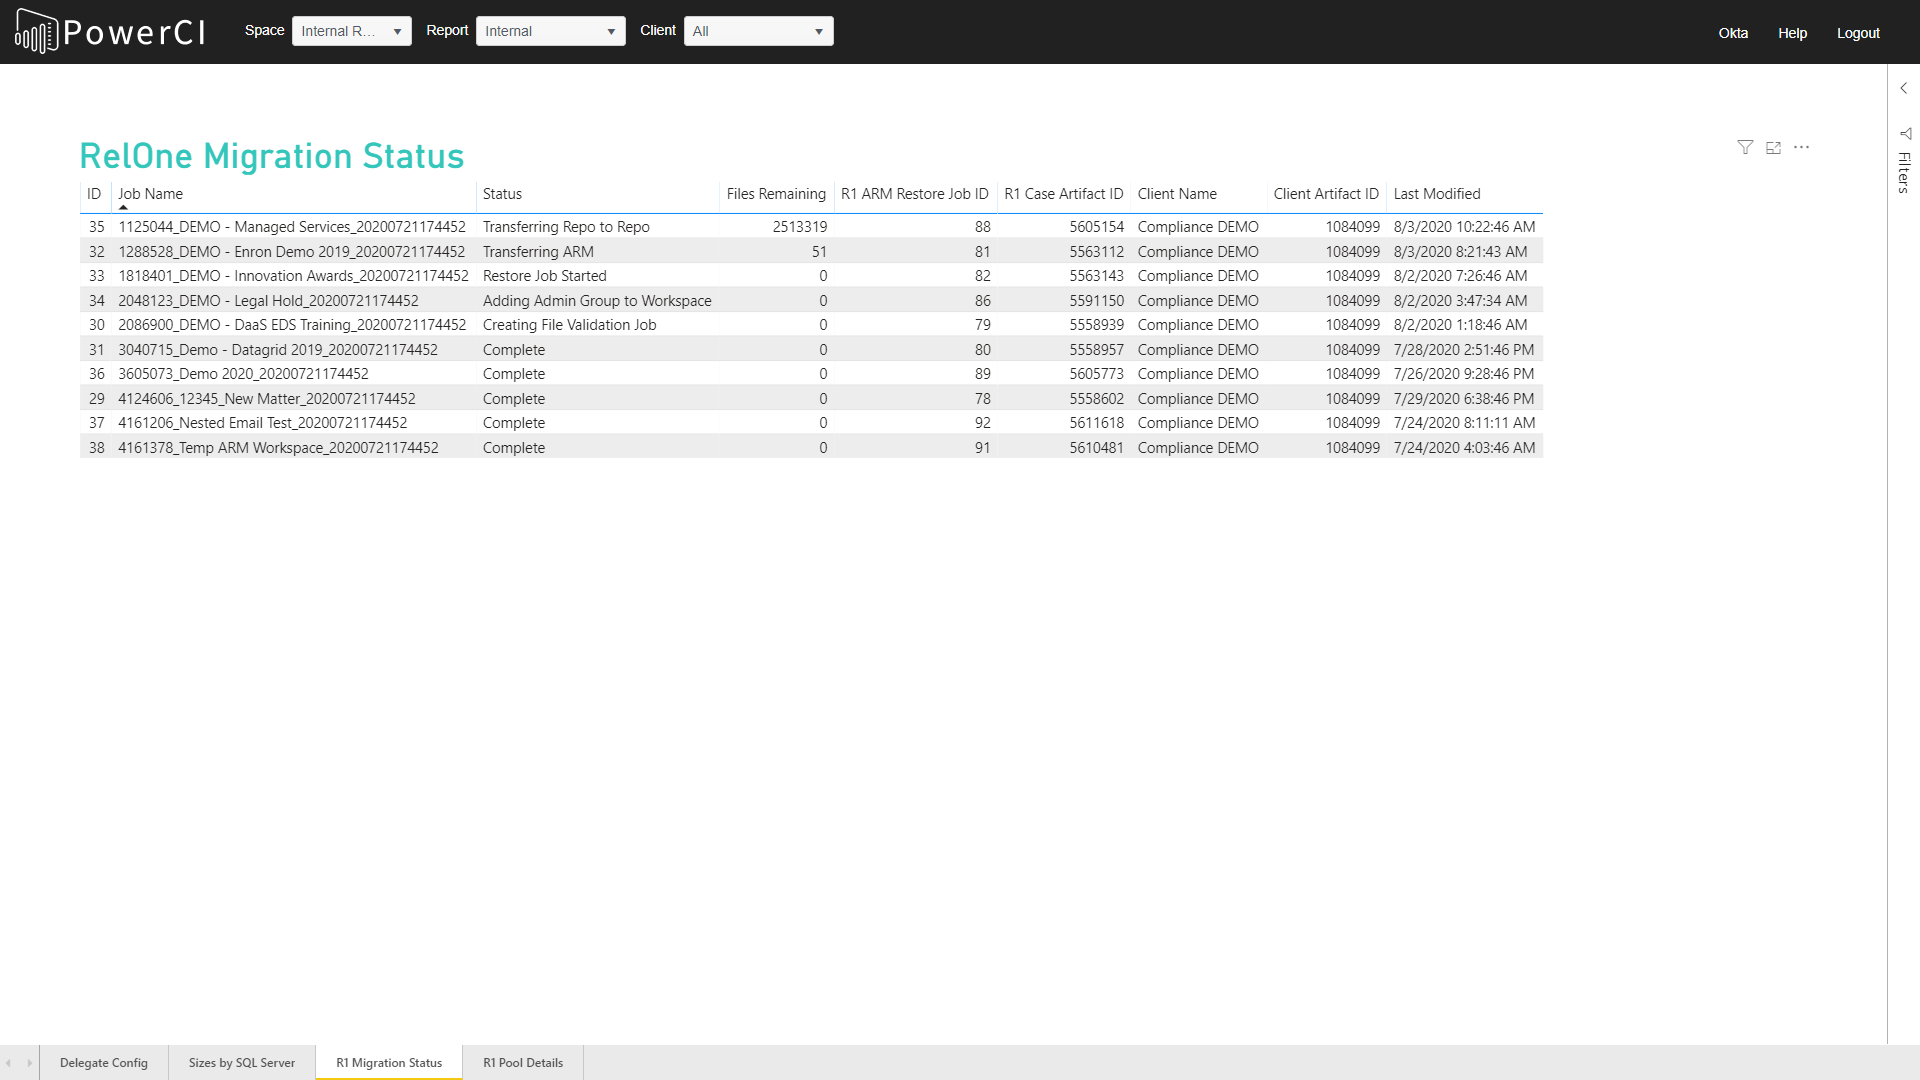 CI Migrate by Compliance Screenshot